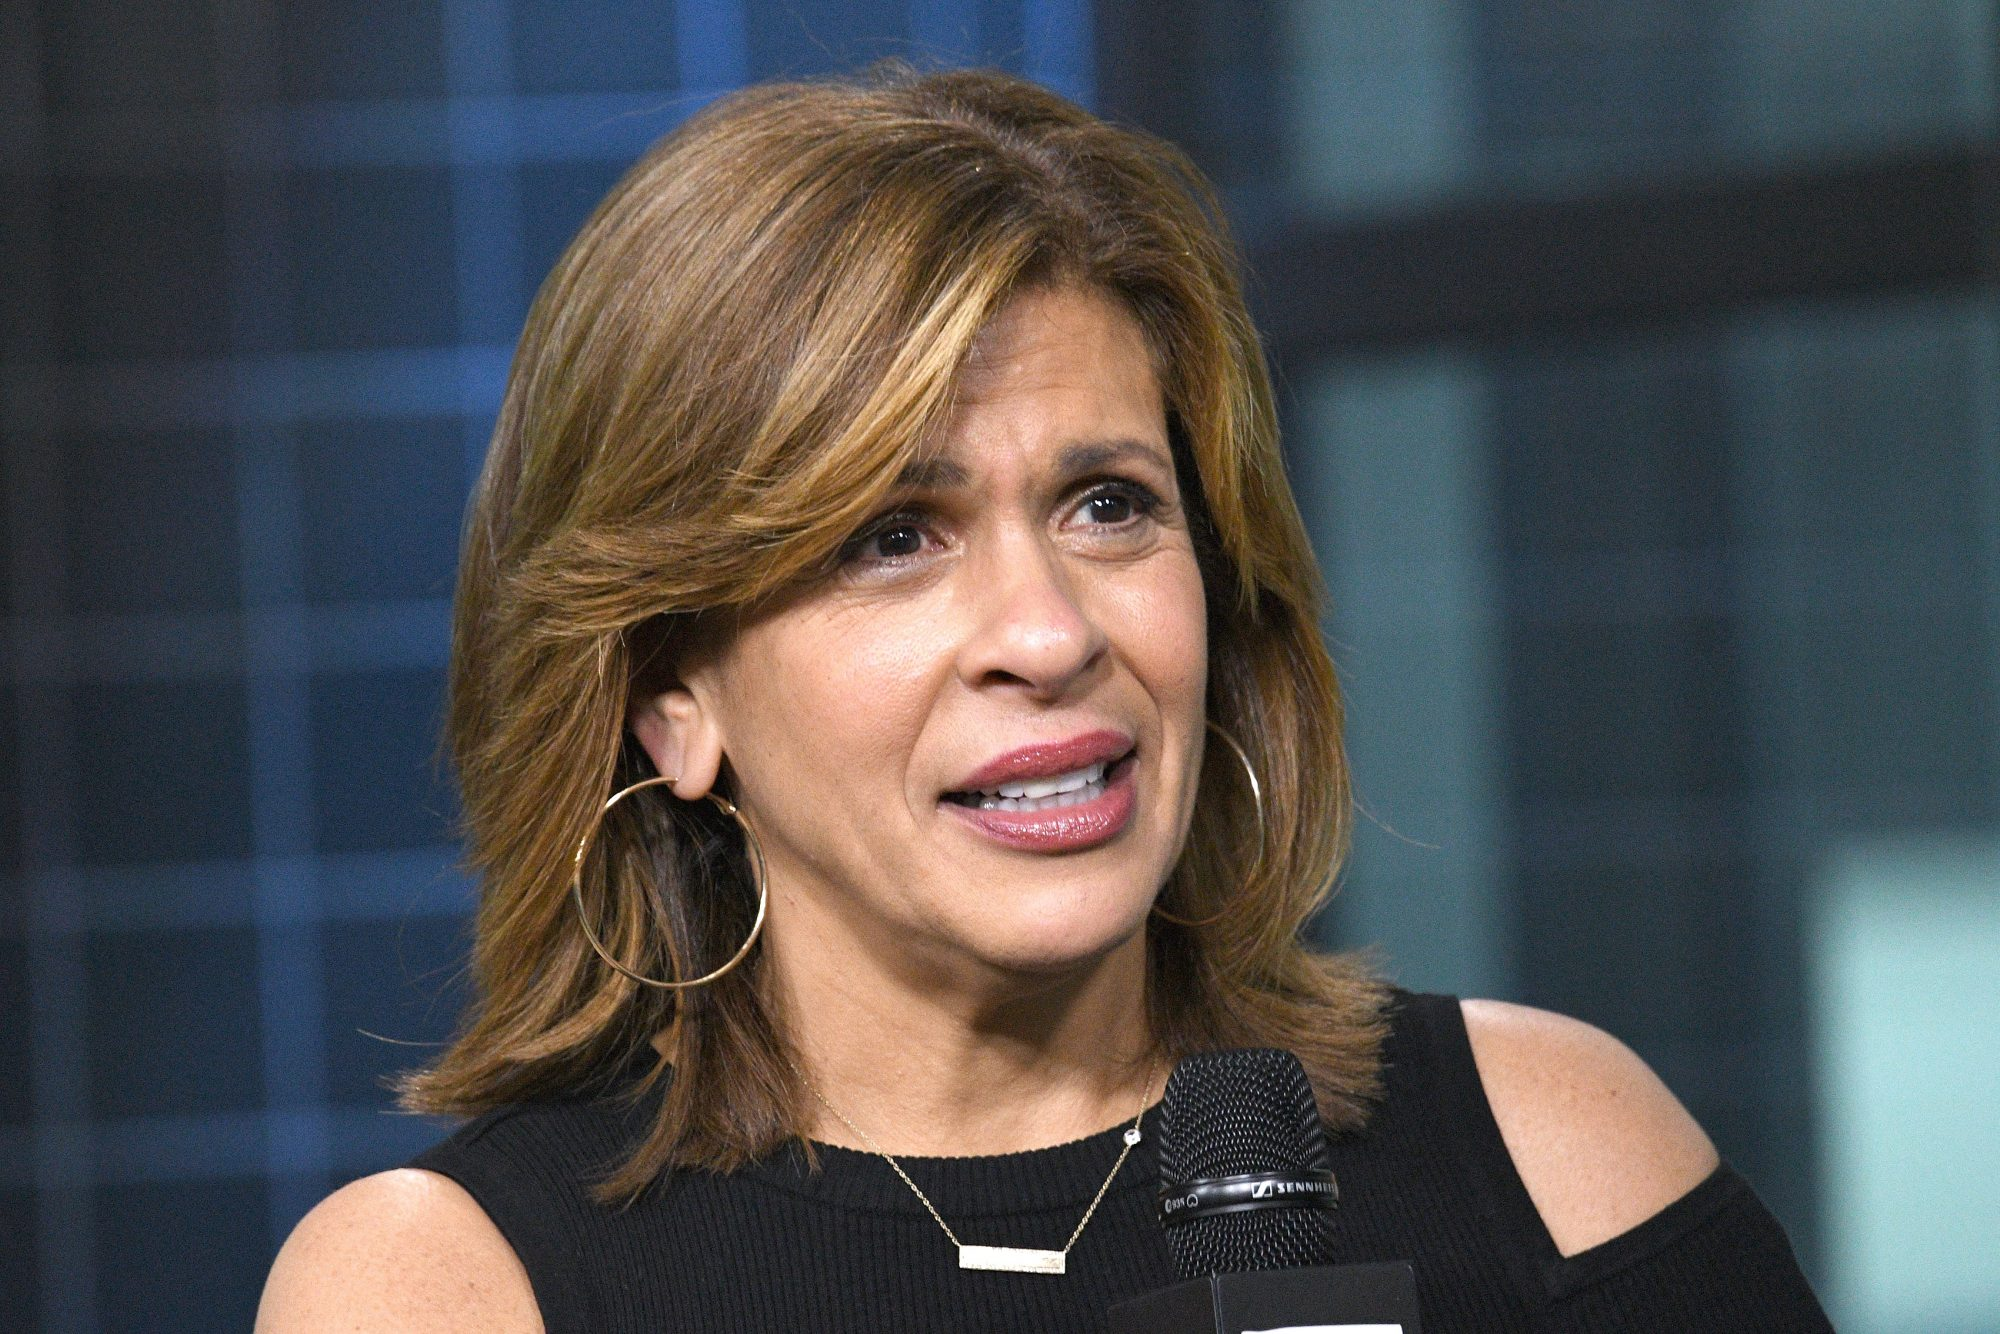 Hoda Kotb Adoption Surprise